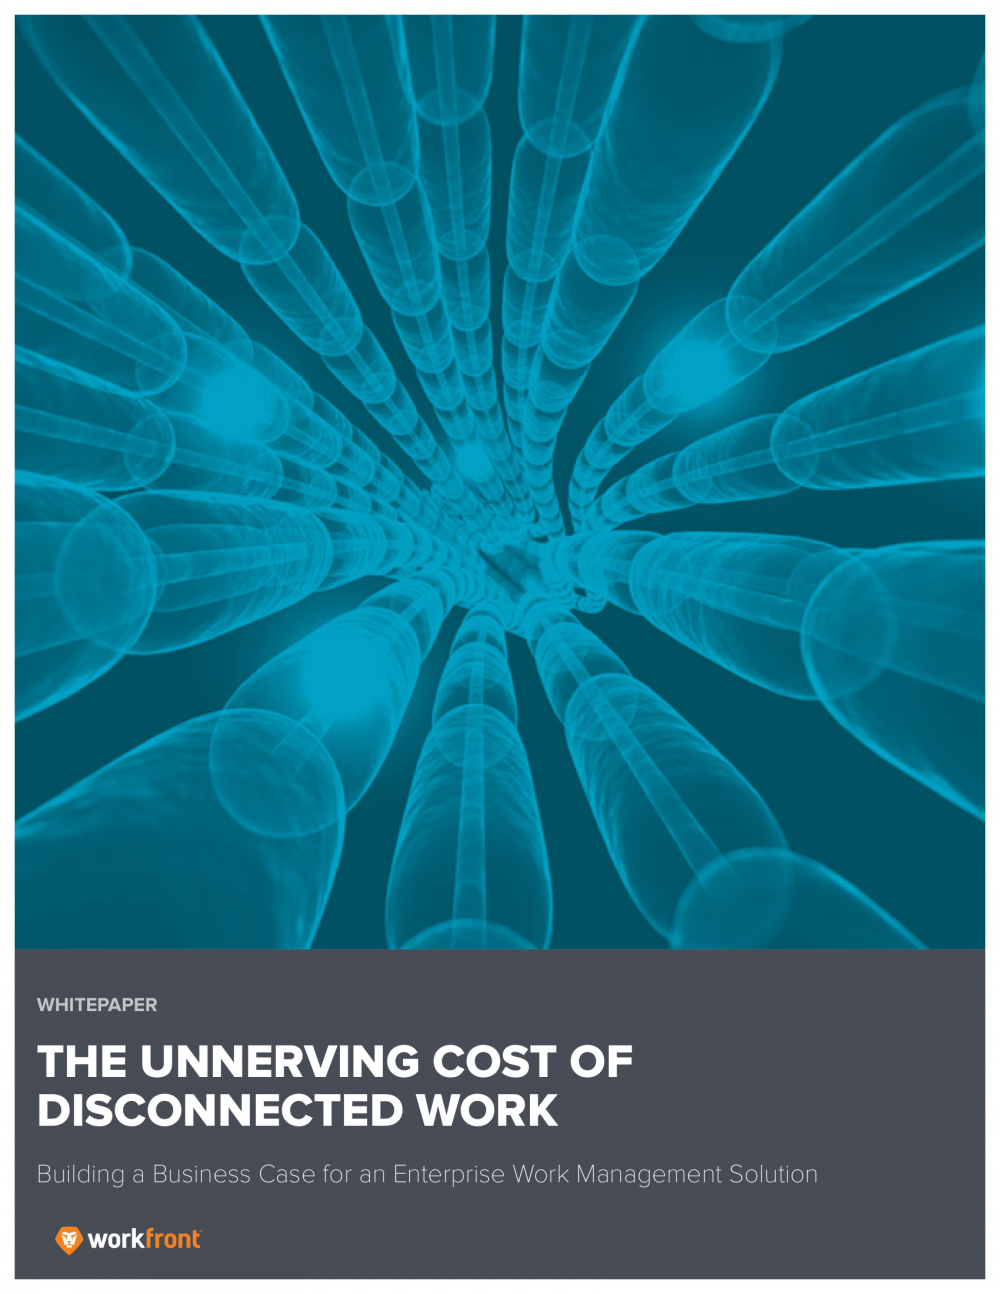 The Unnerving Cost of Disconnected Work - Building a Business Case for an Enterprise Work Management Solution